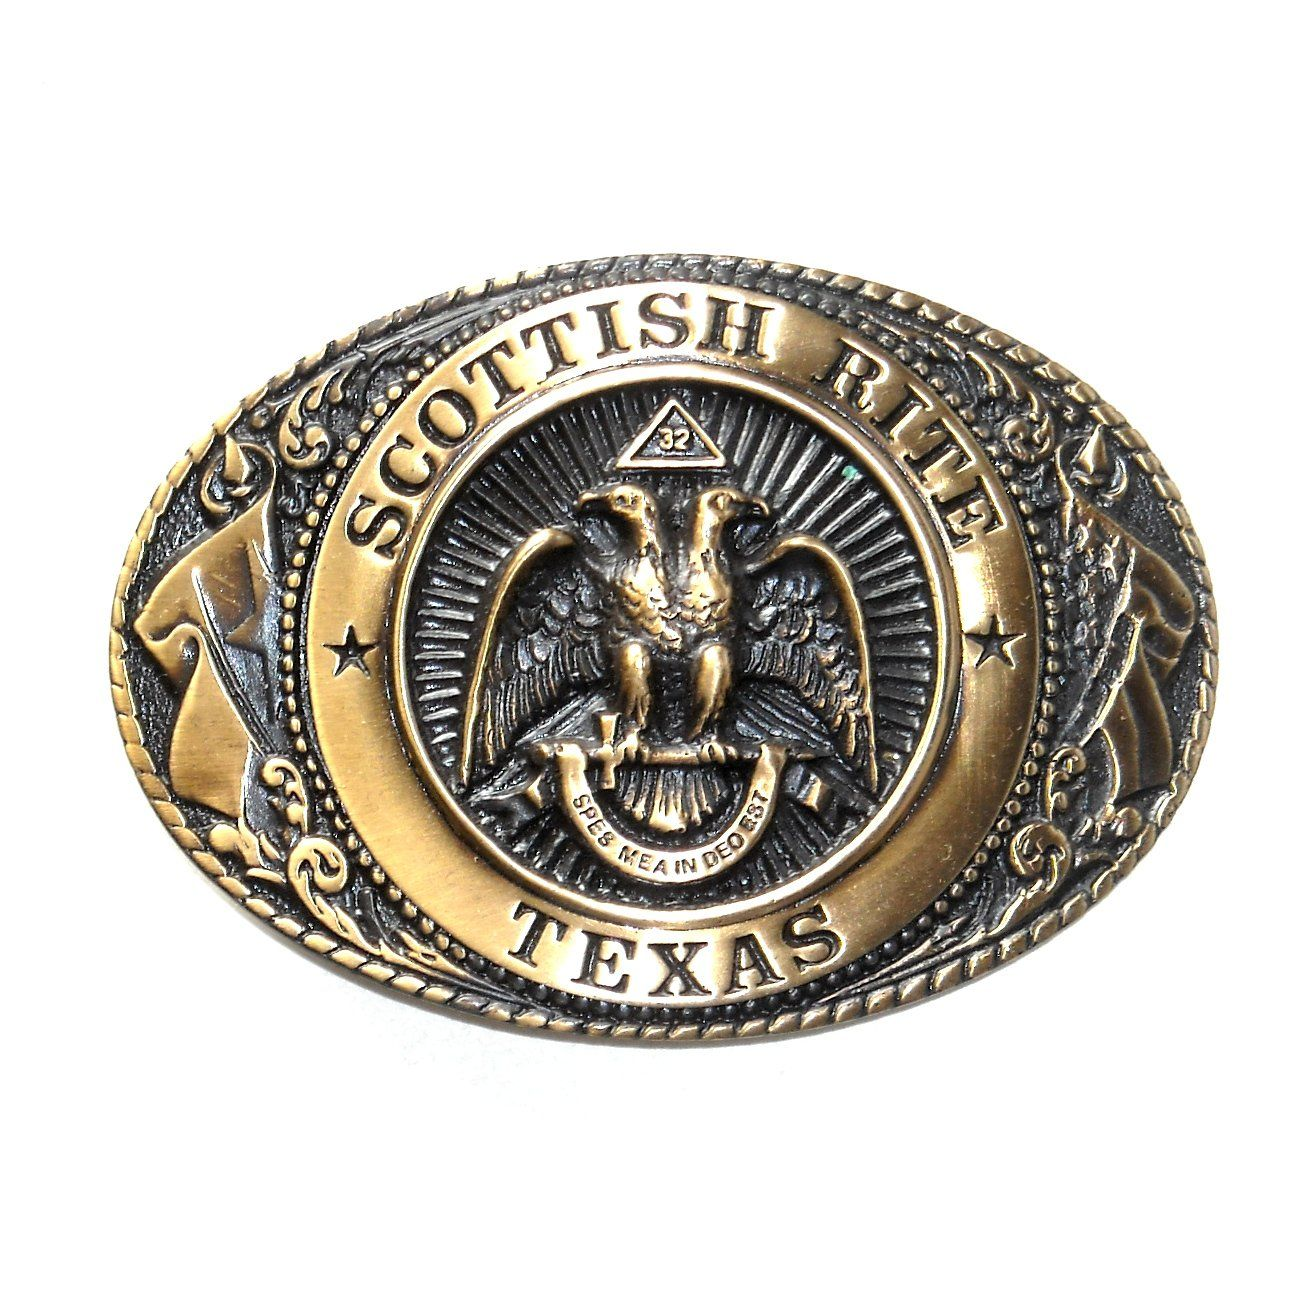 TEXAS STATE SEAL WESTERN BELT BUCKLE 2 3//4 BY 3 3//4 GOLD TONE